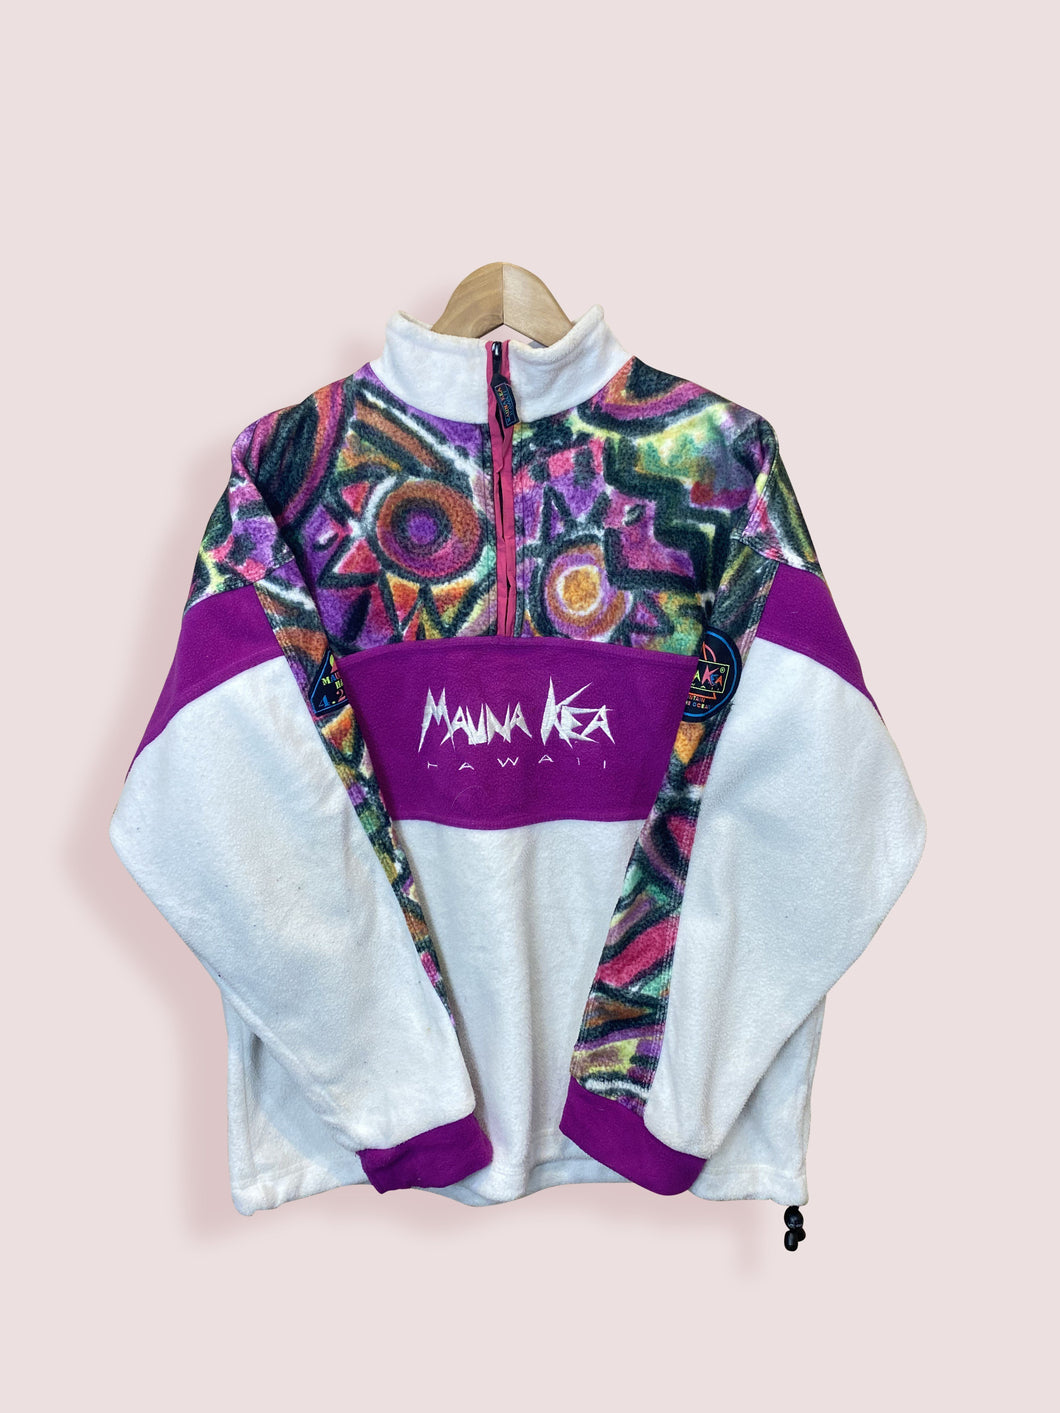 L Mauna Kea Cream Purple Half Zip Fleece - DURT